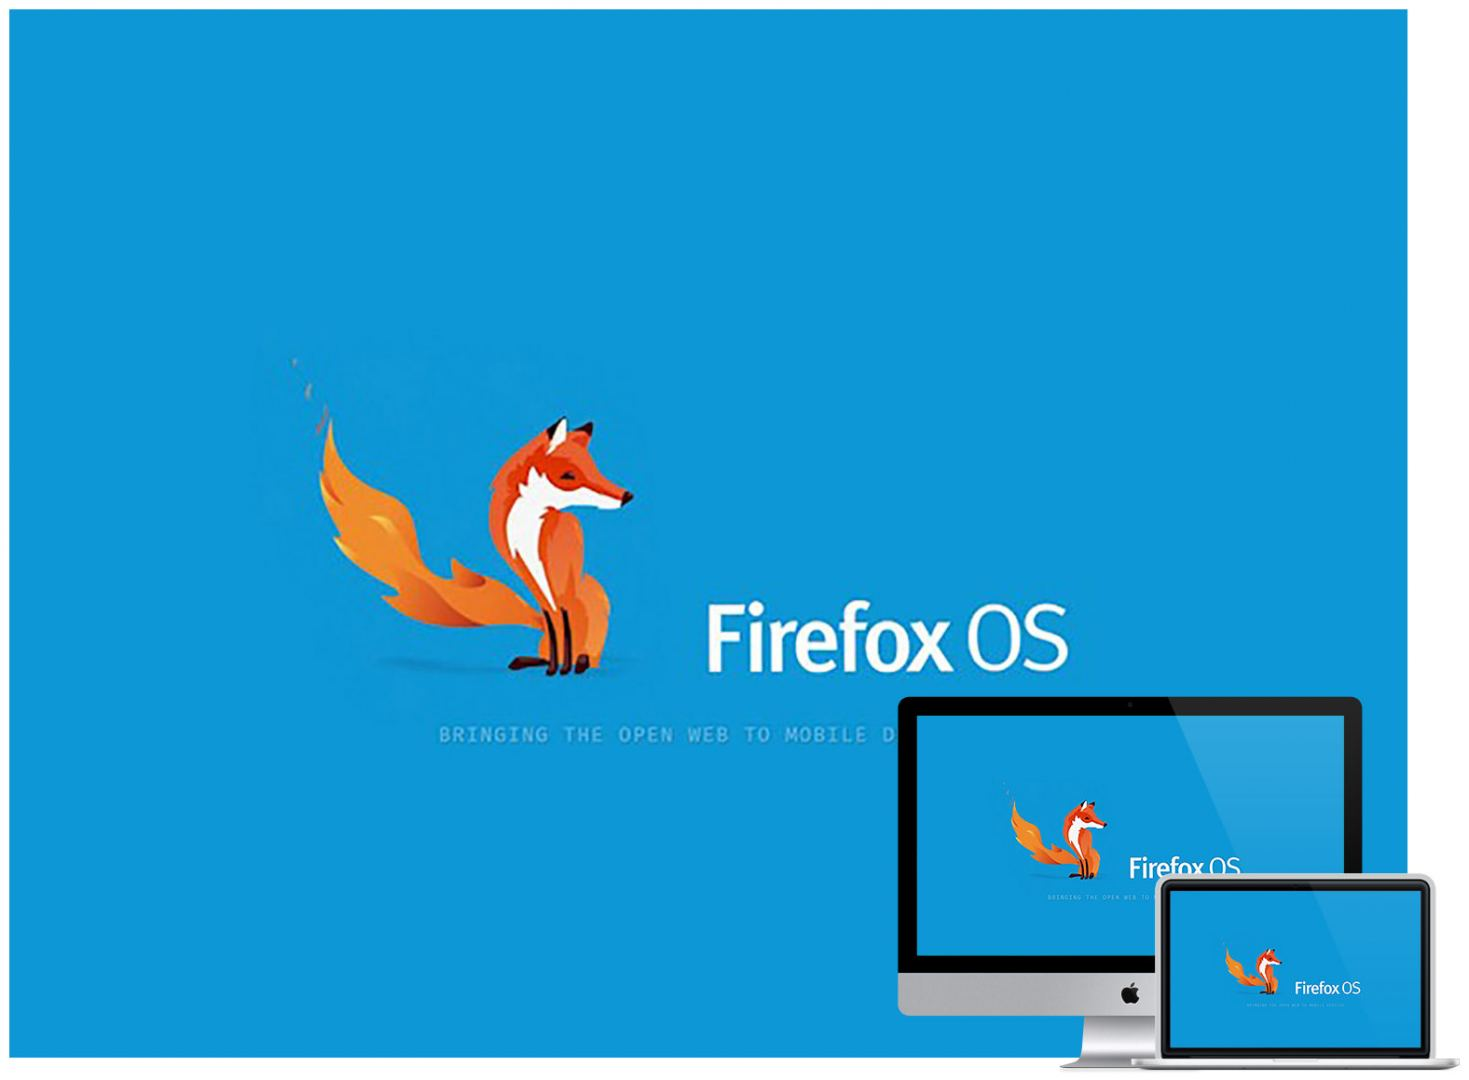 os_desktop_firefox-wallpaper